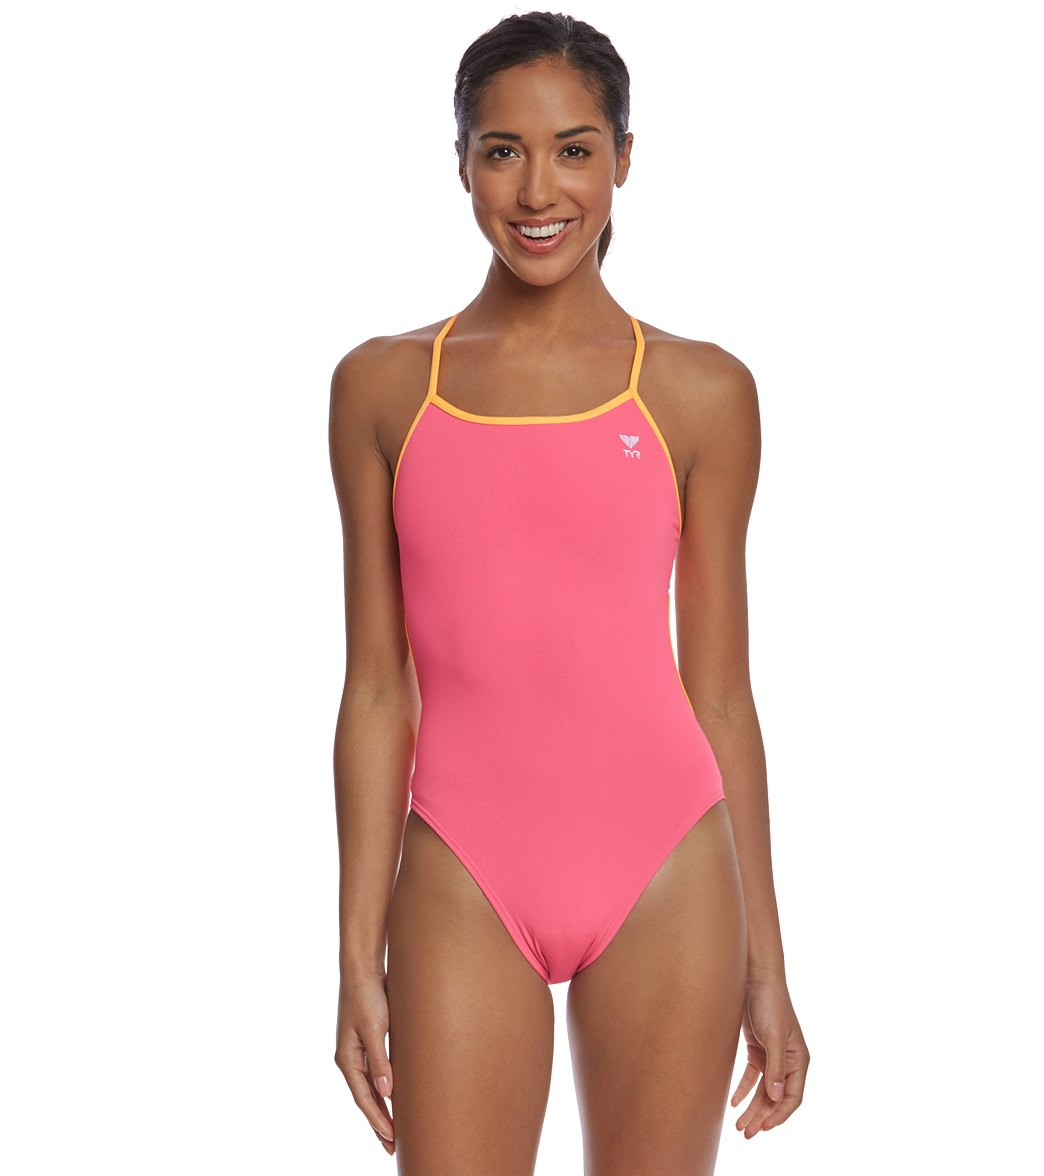 9ea4b62a7d TYR Women s Solid Trinityfit One Piece Swimsuit at SwimOutlet.com - Free  Shipping